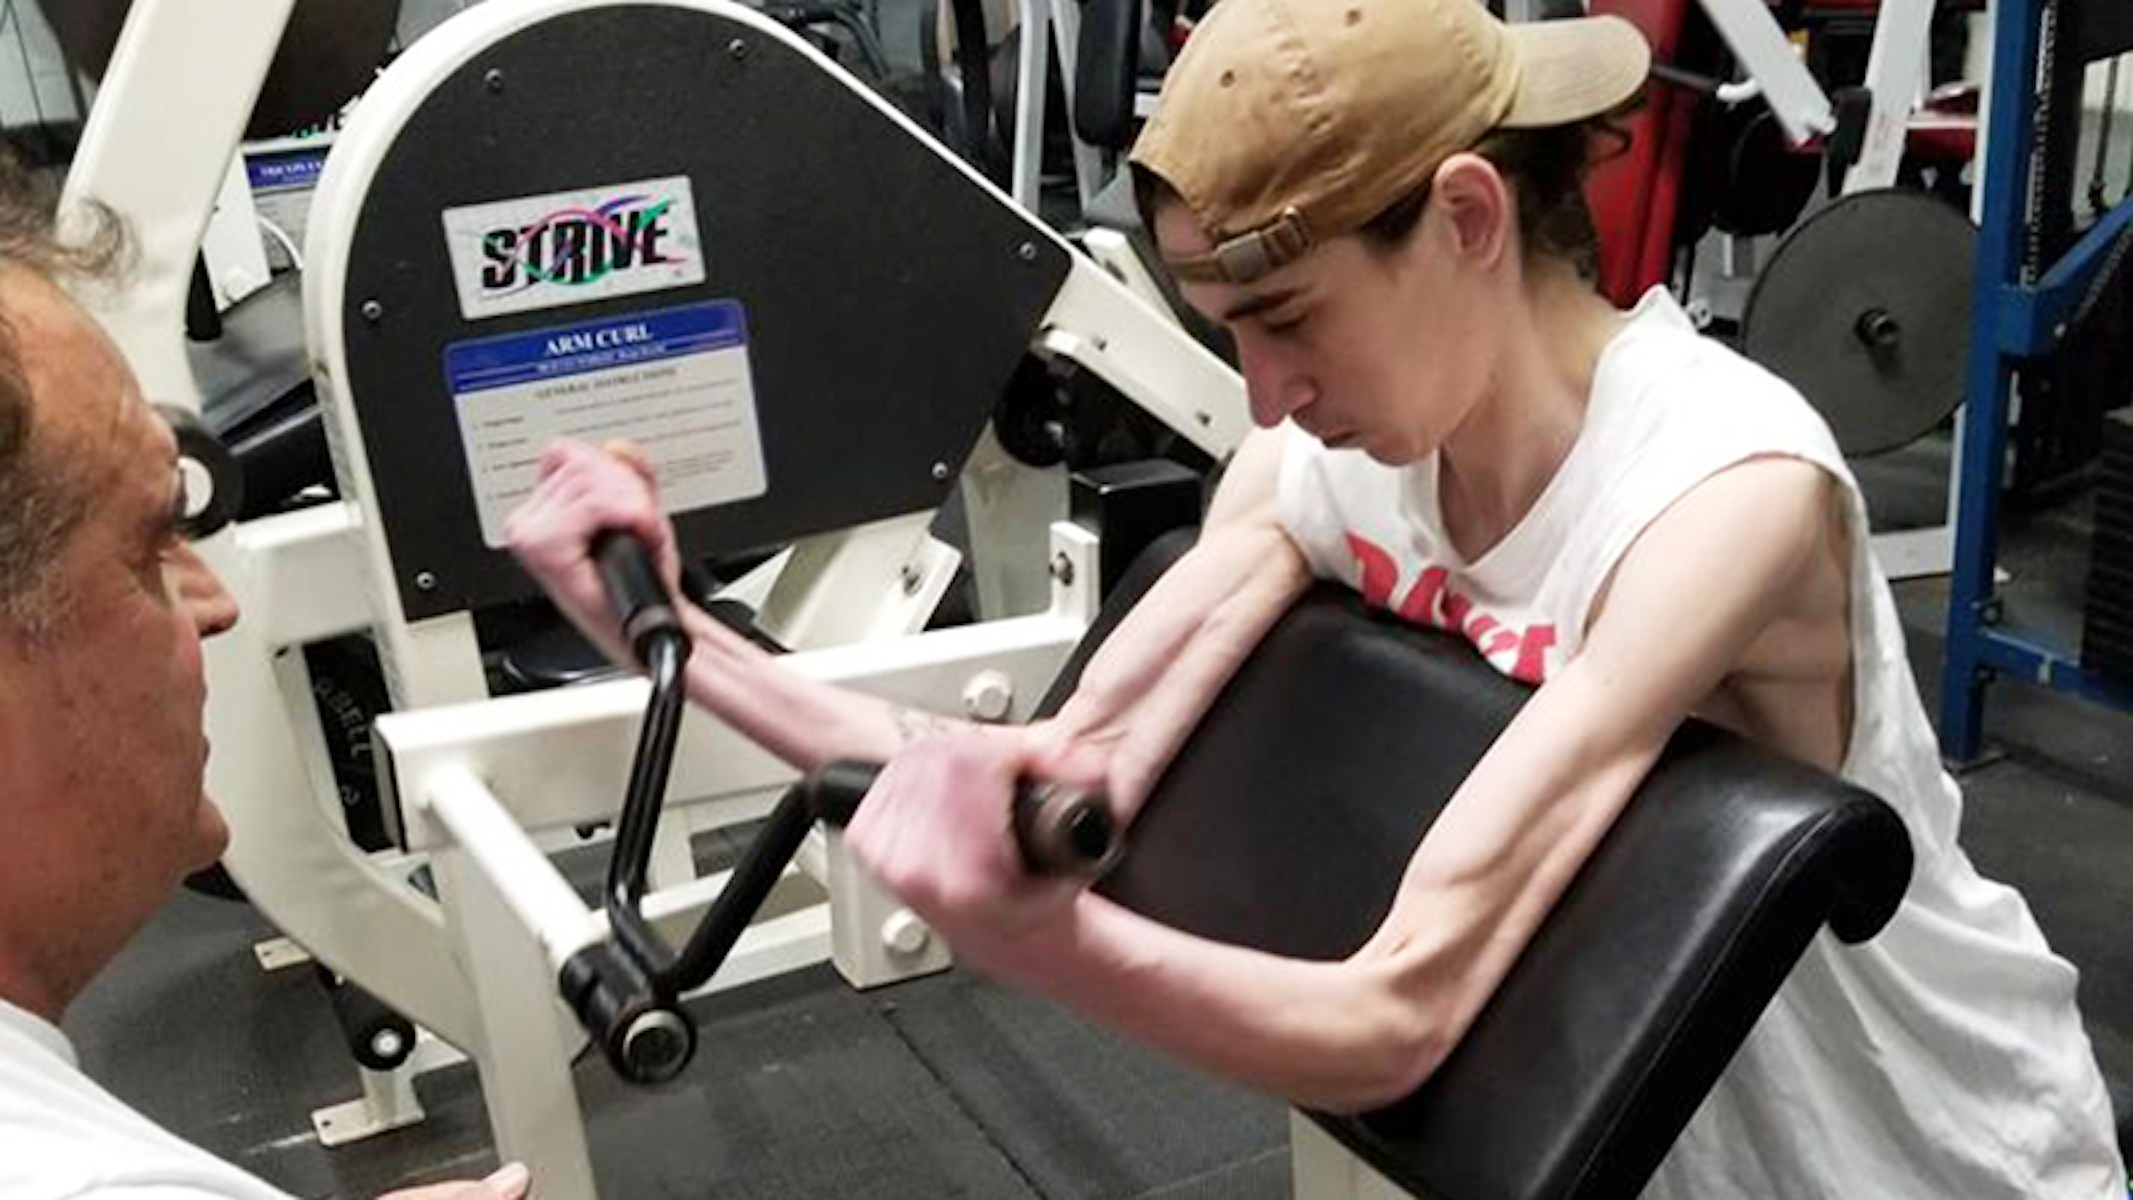 Man With Terminal Illness Refuses to Accept Fate and Starts Hitting the Gym Hard